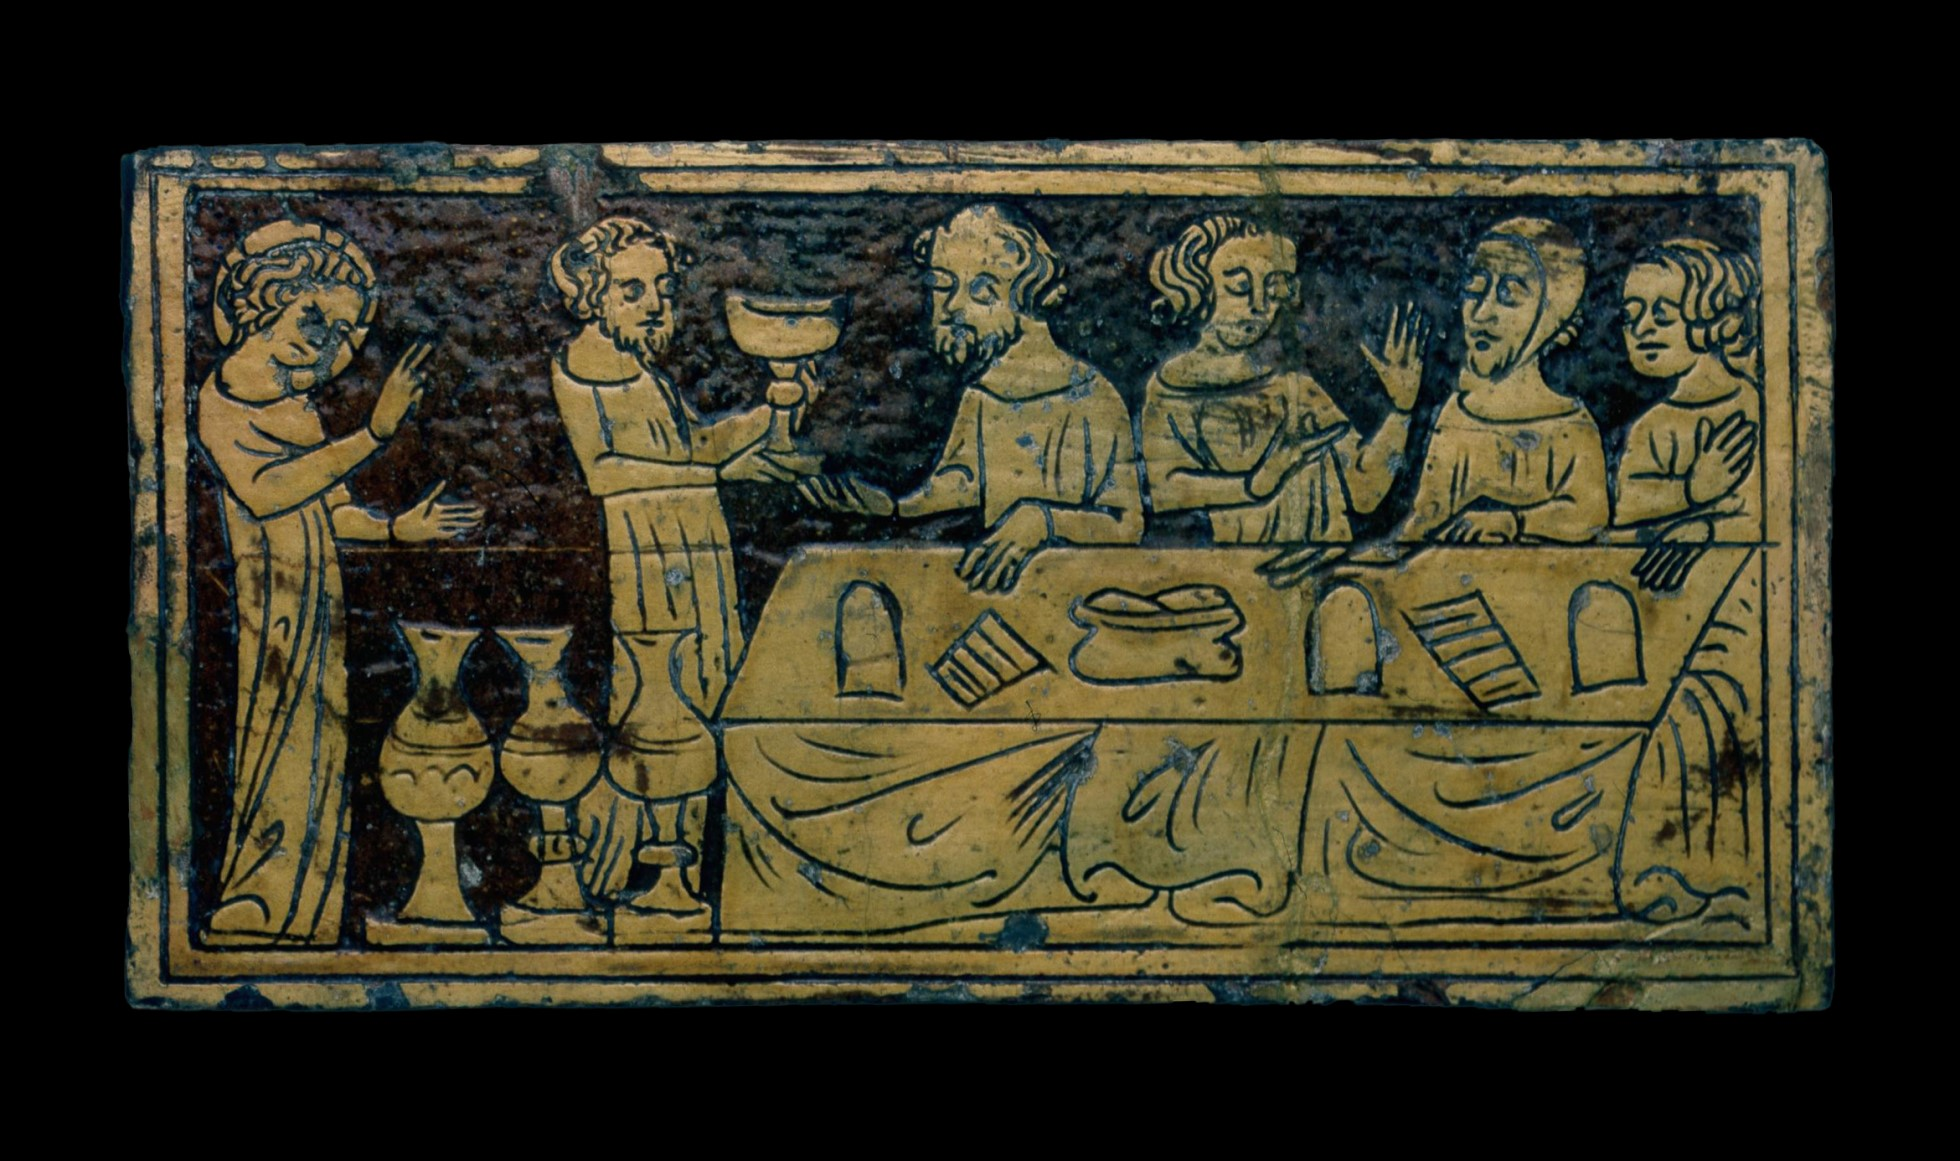 Earthenware tile. The tile has a dark background with figures shown in a cream slip. The tile shows a group of people sitting around a table. A standing figure holds a large cup. A figure with a halo stands apart from the party on the far left and raises his hands.